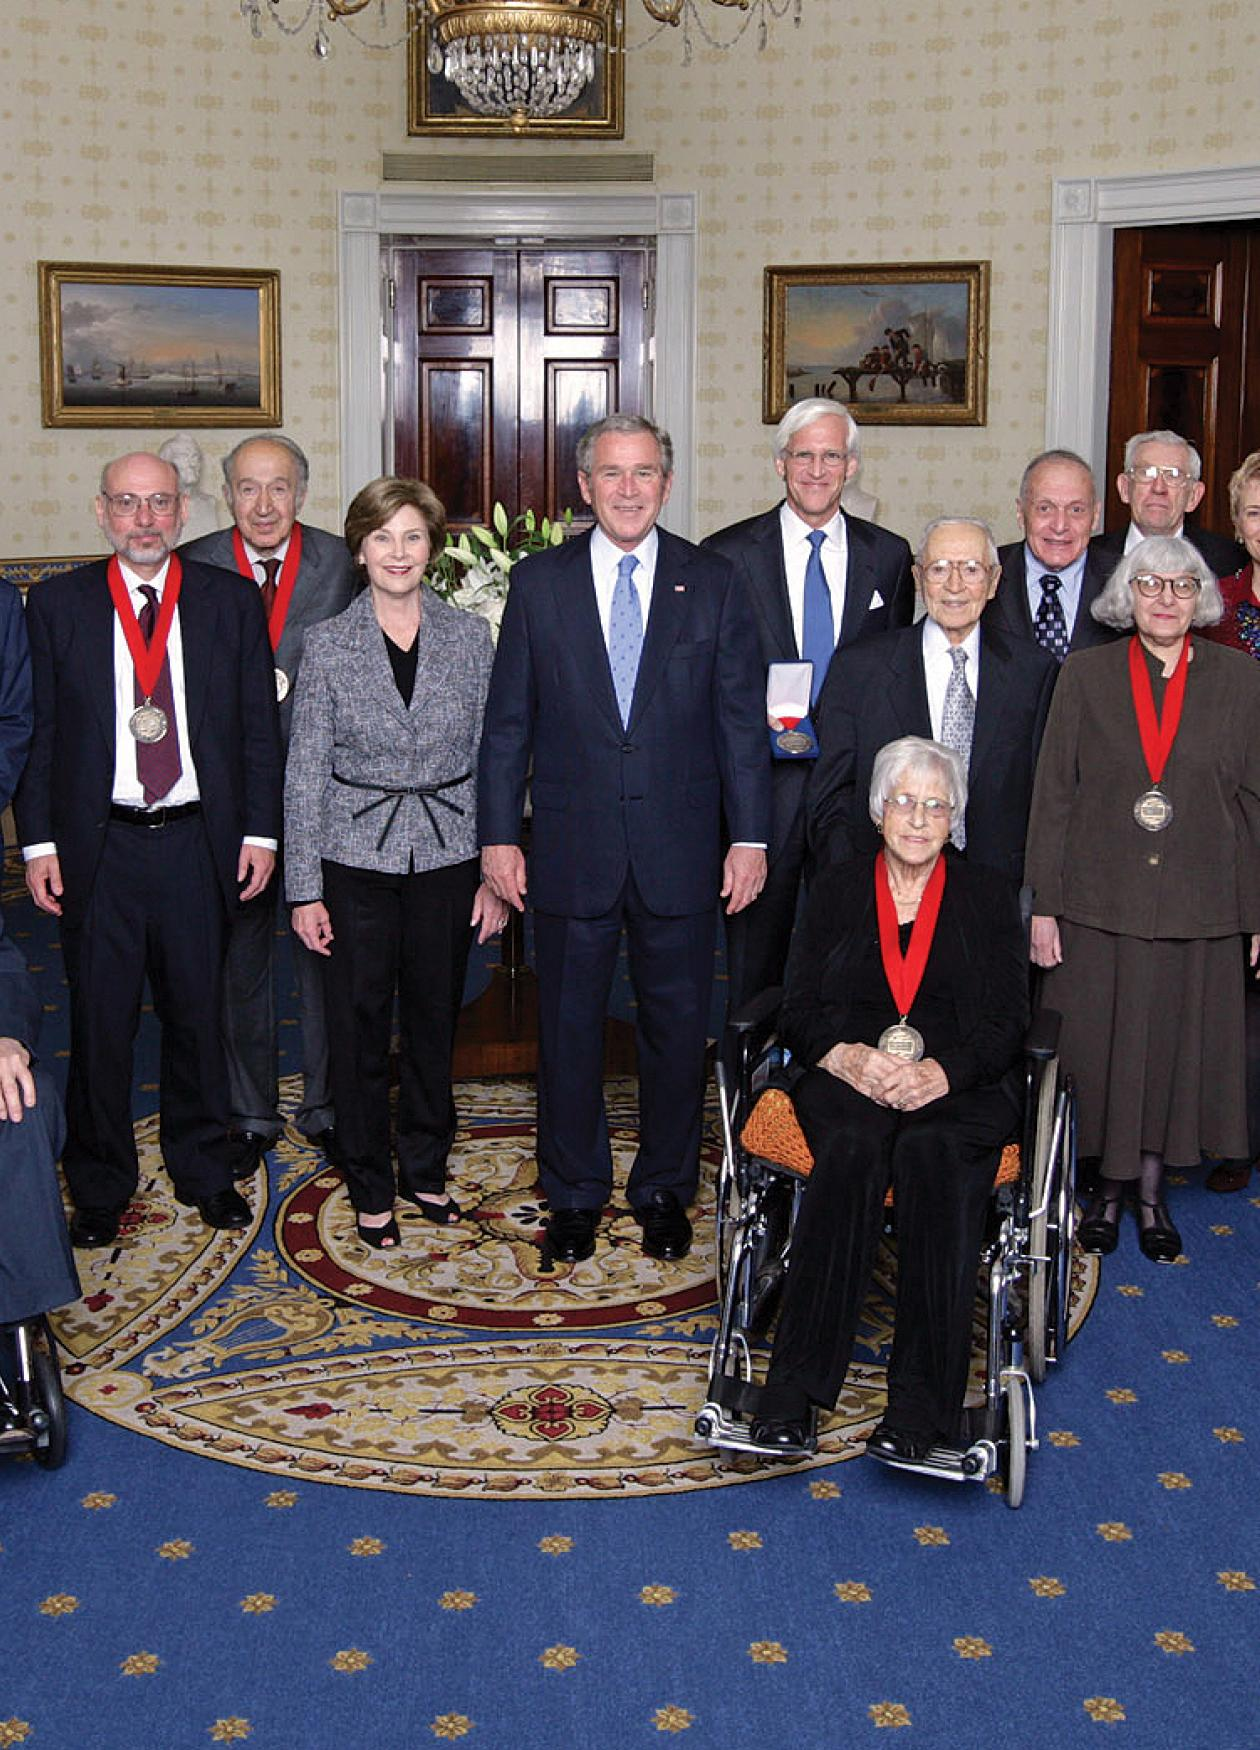 President Bush, standing in the middle of the Medalists wearing their medals, in the Oval Office